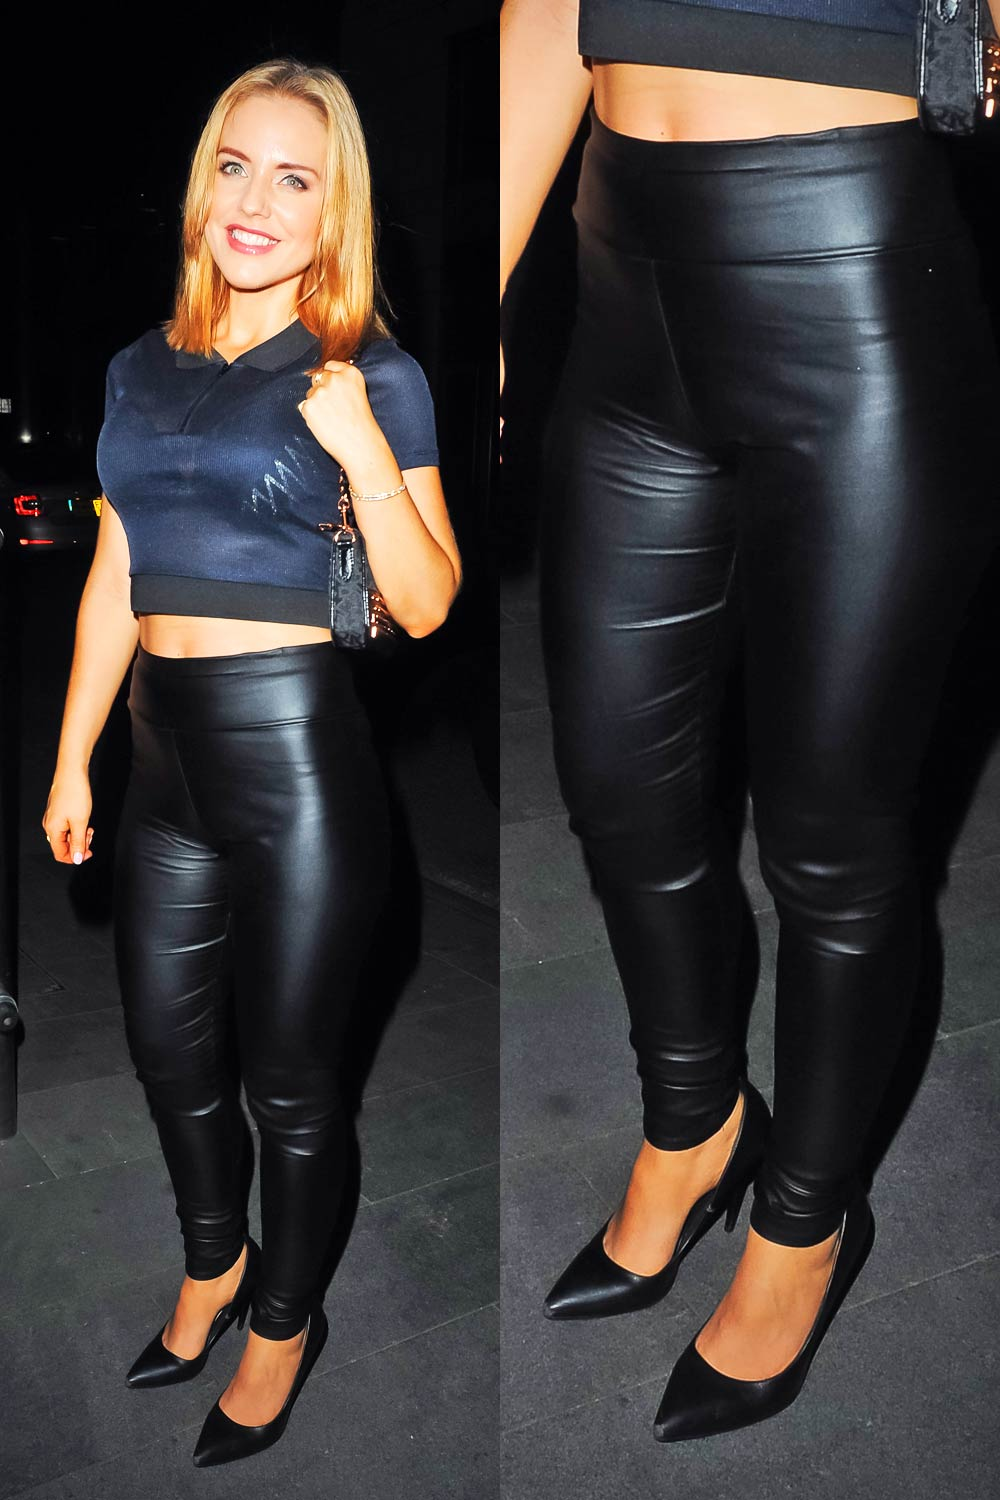 Stephanie Waring Seen Out For The Night In Manchester